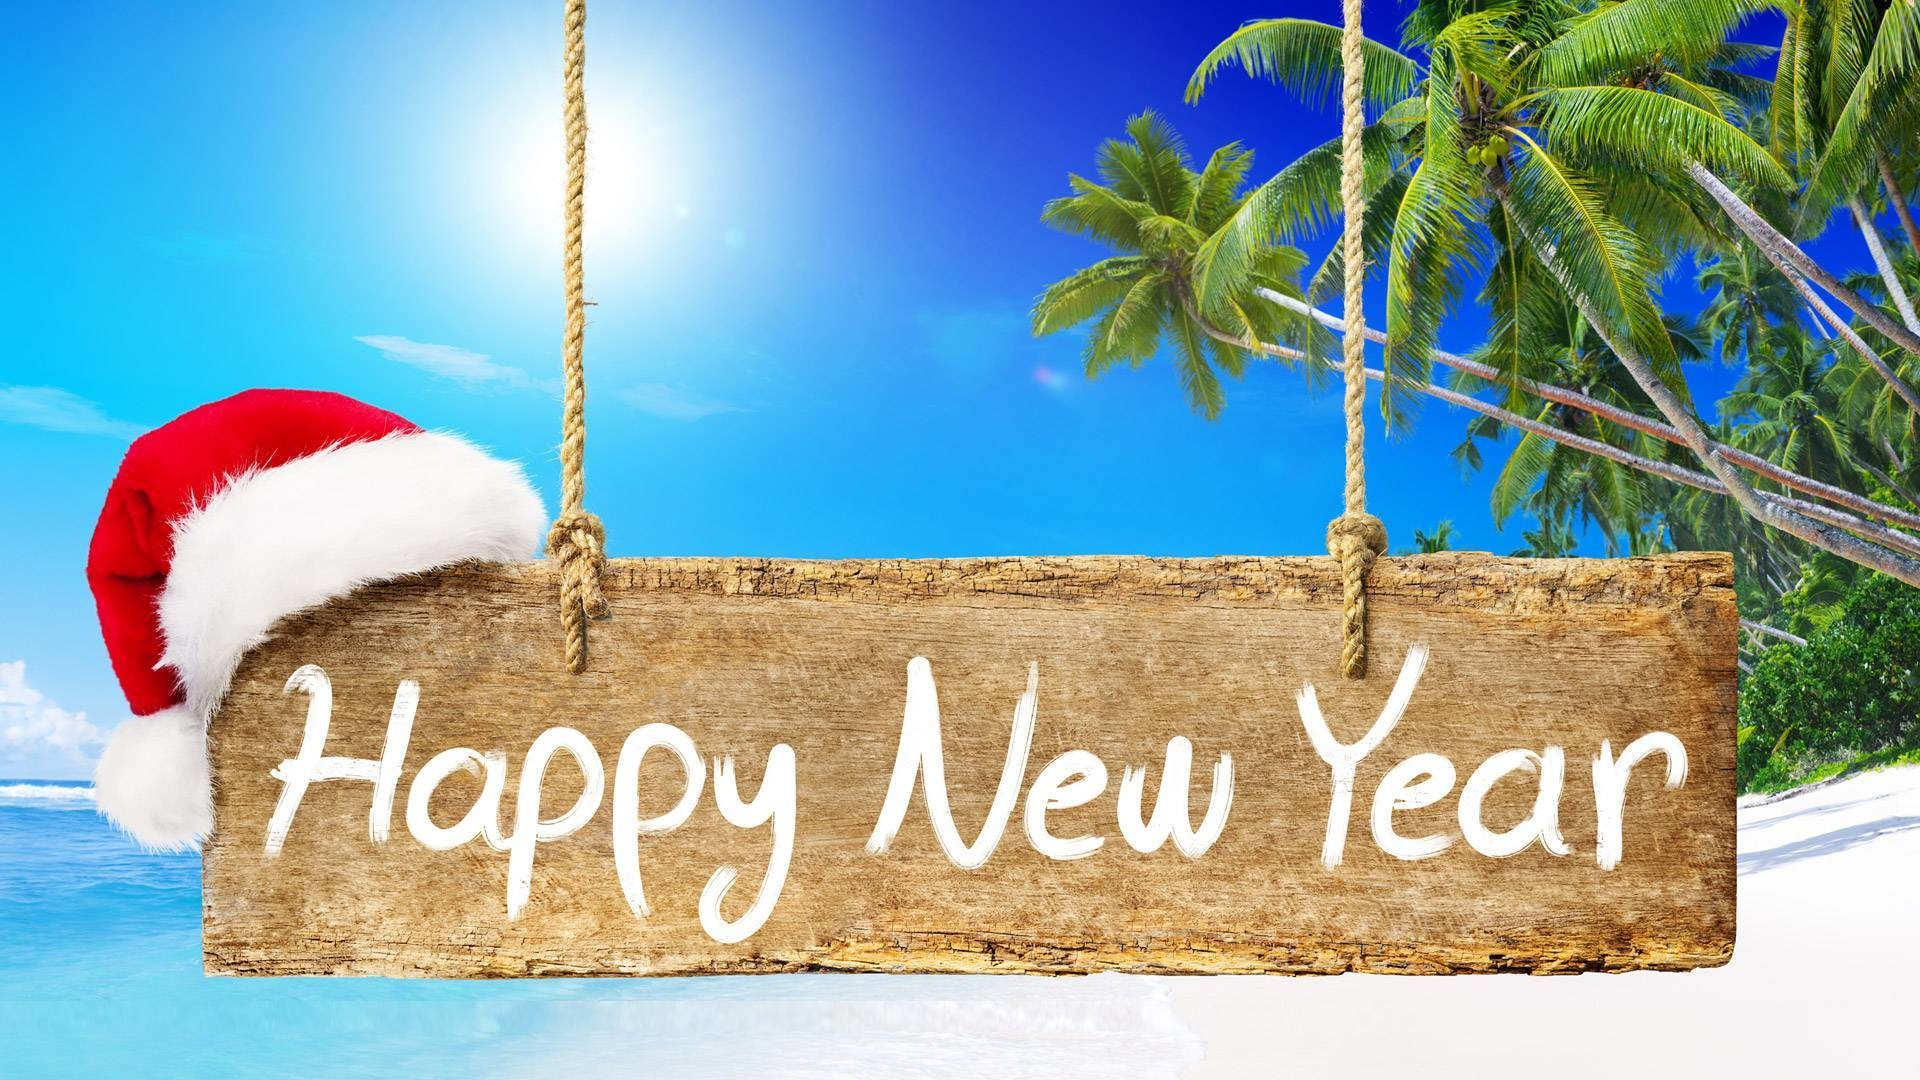 4K Merry Christmas Happy New Year Beach Wallpapers